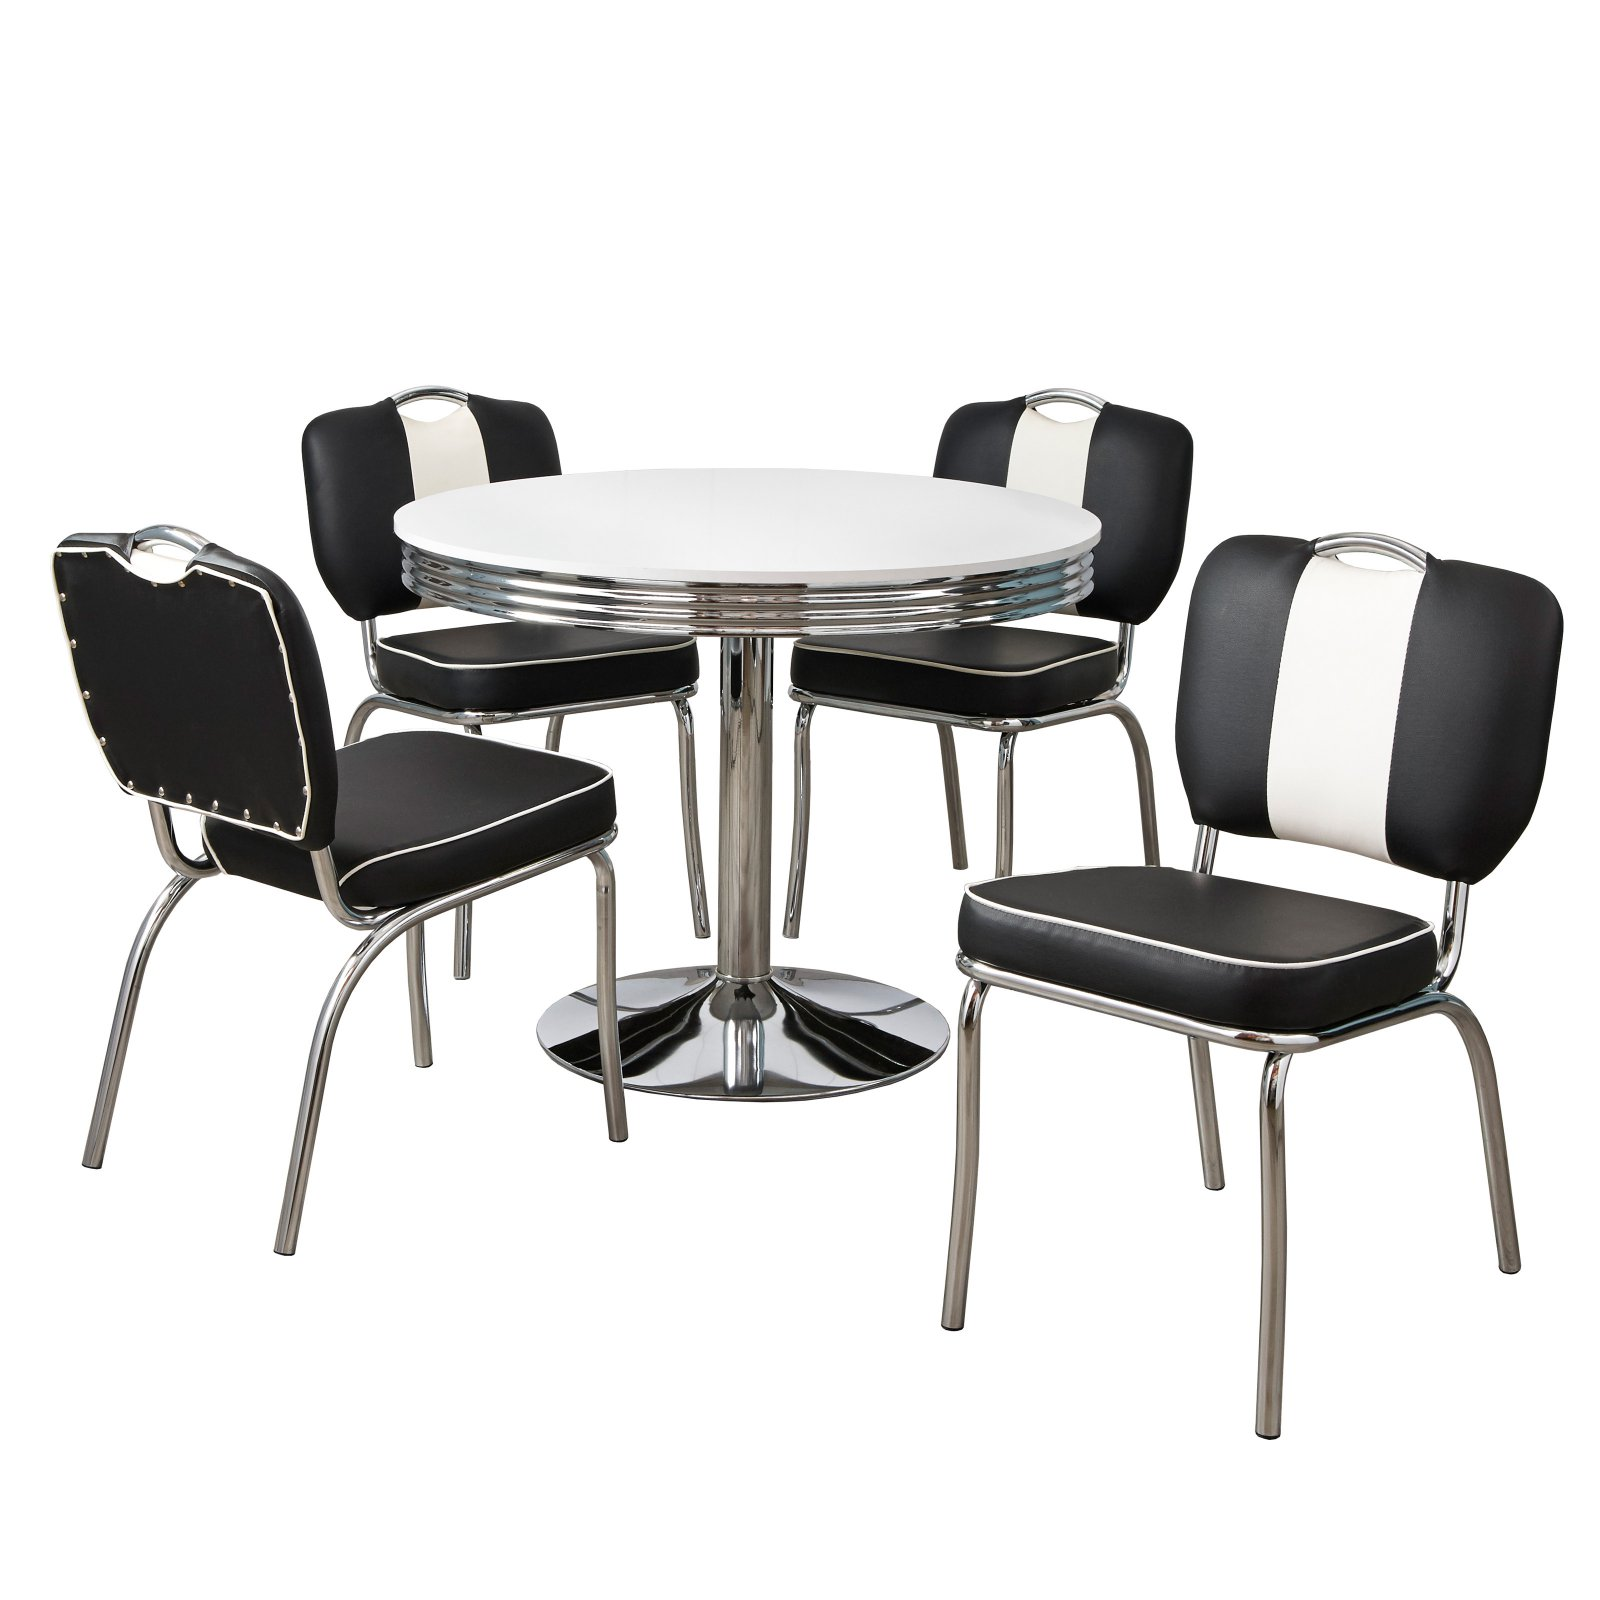 Target Marketing Systems Raleigh 5 Piece Dining Table Set Black